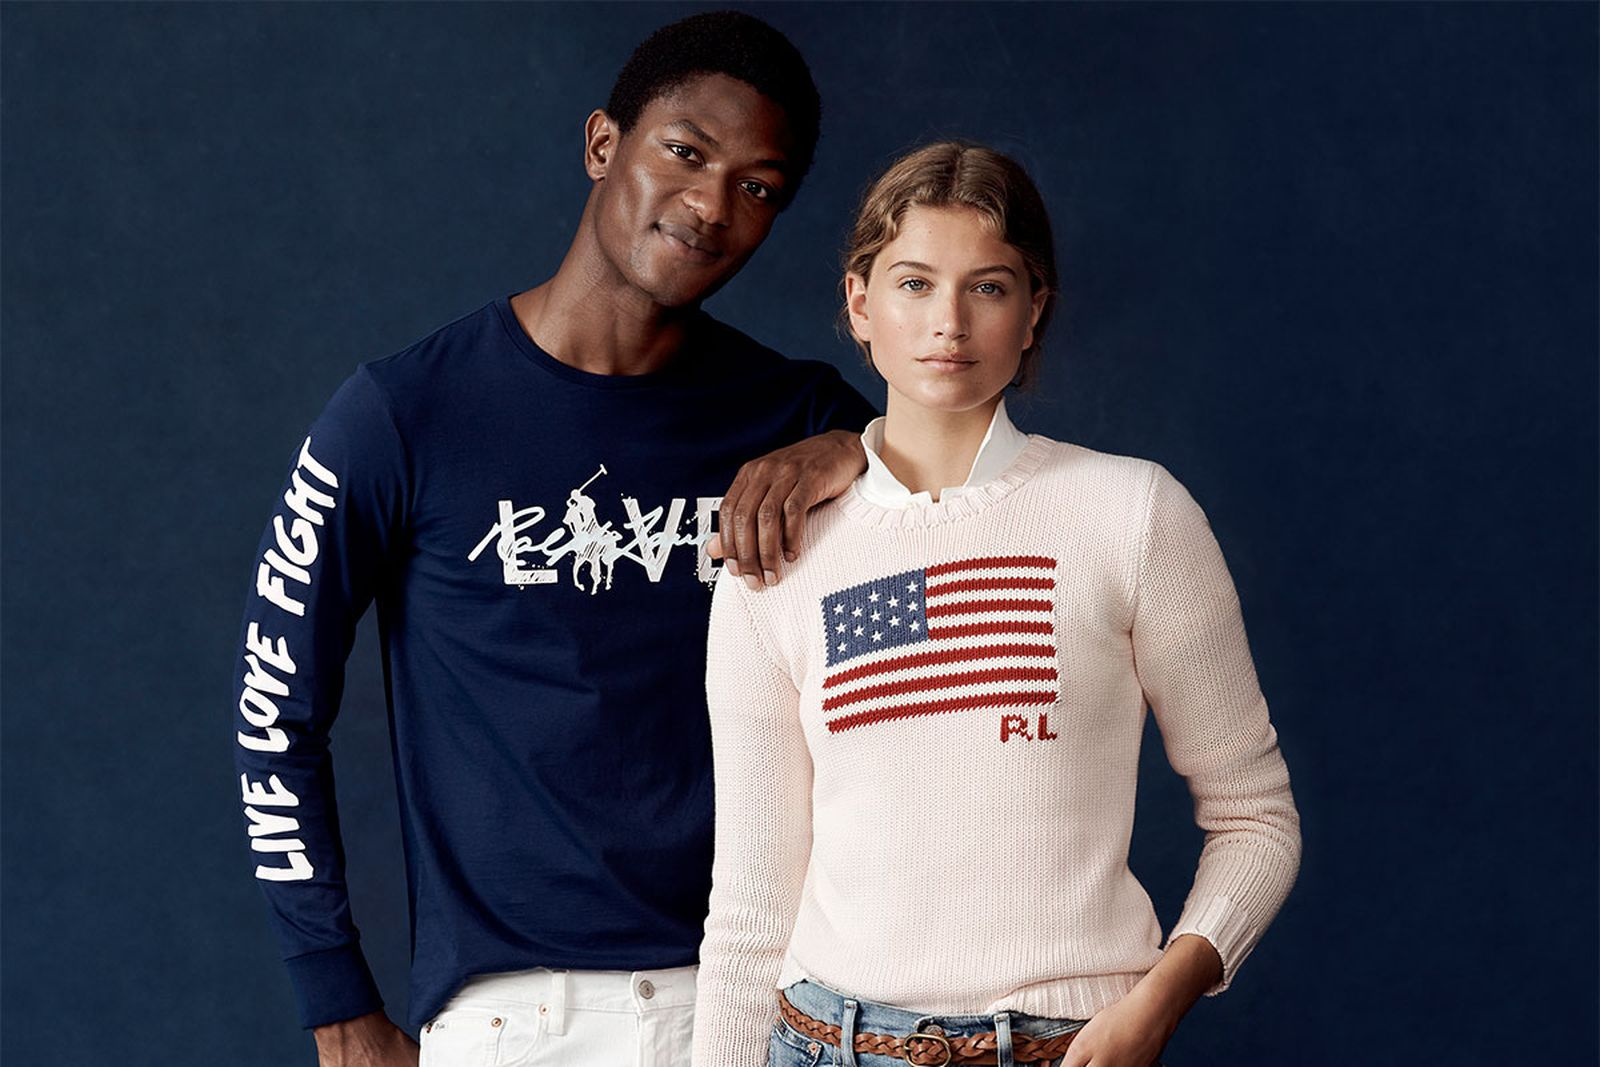 ralph laurens cancer awareness together pink campaign pink pony collection polo ralph lauren ralph lauren polo